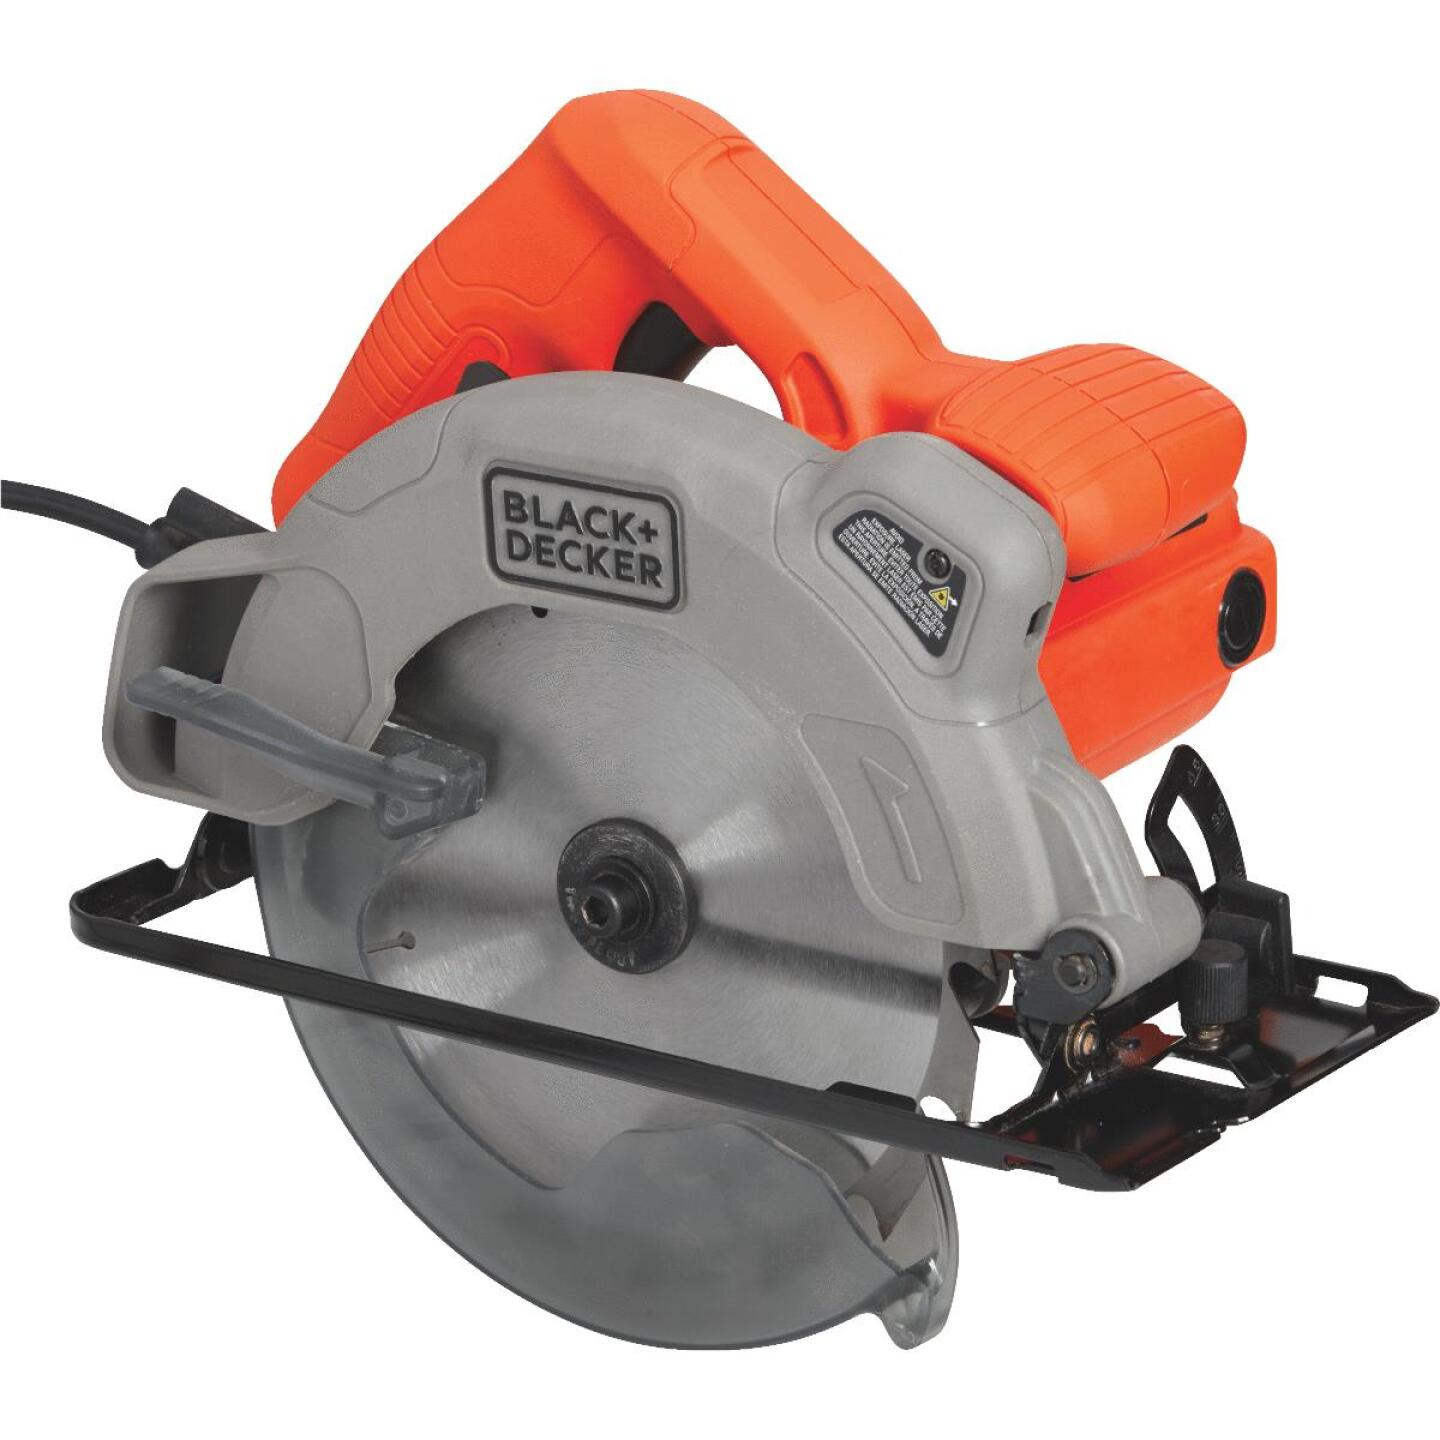 Black & Decker 7-1/4 In. 13-Amp Circular Saw with Laser Image 2